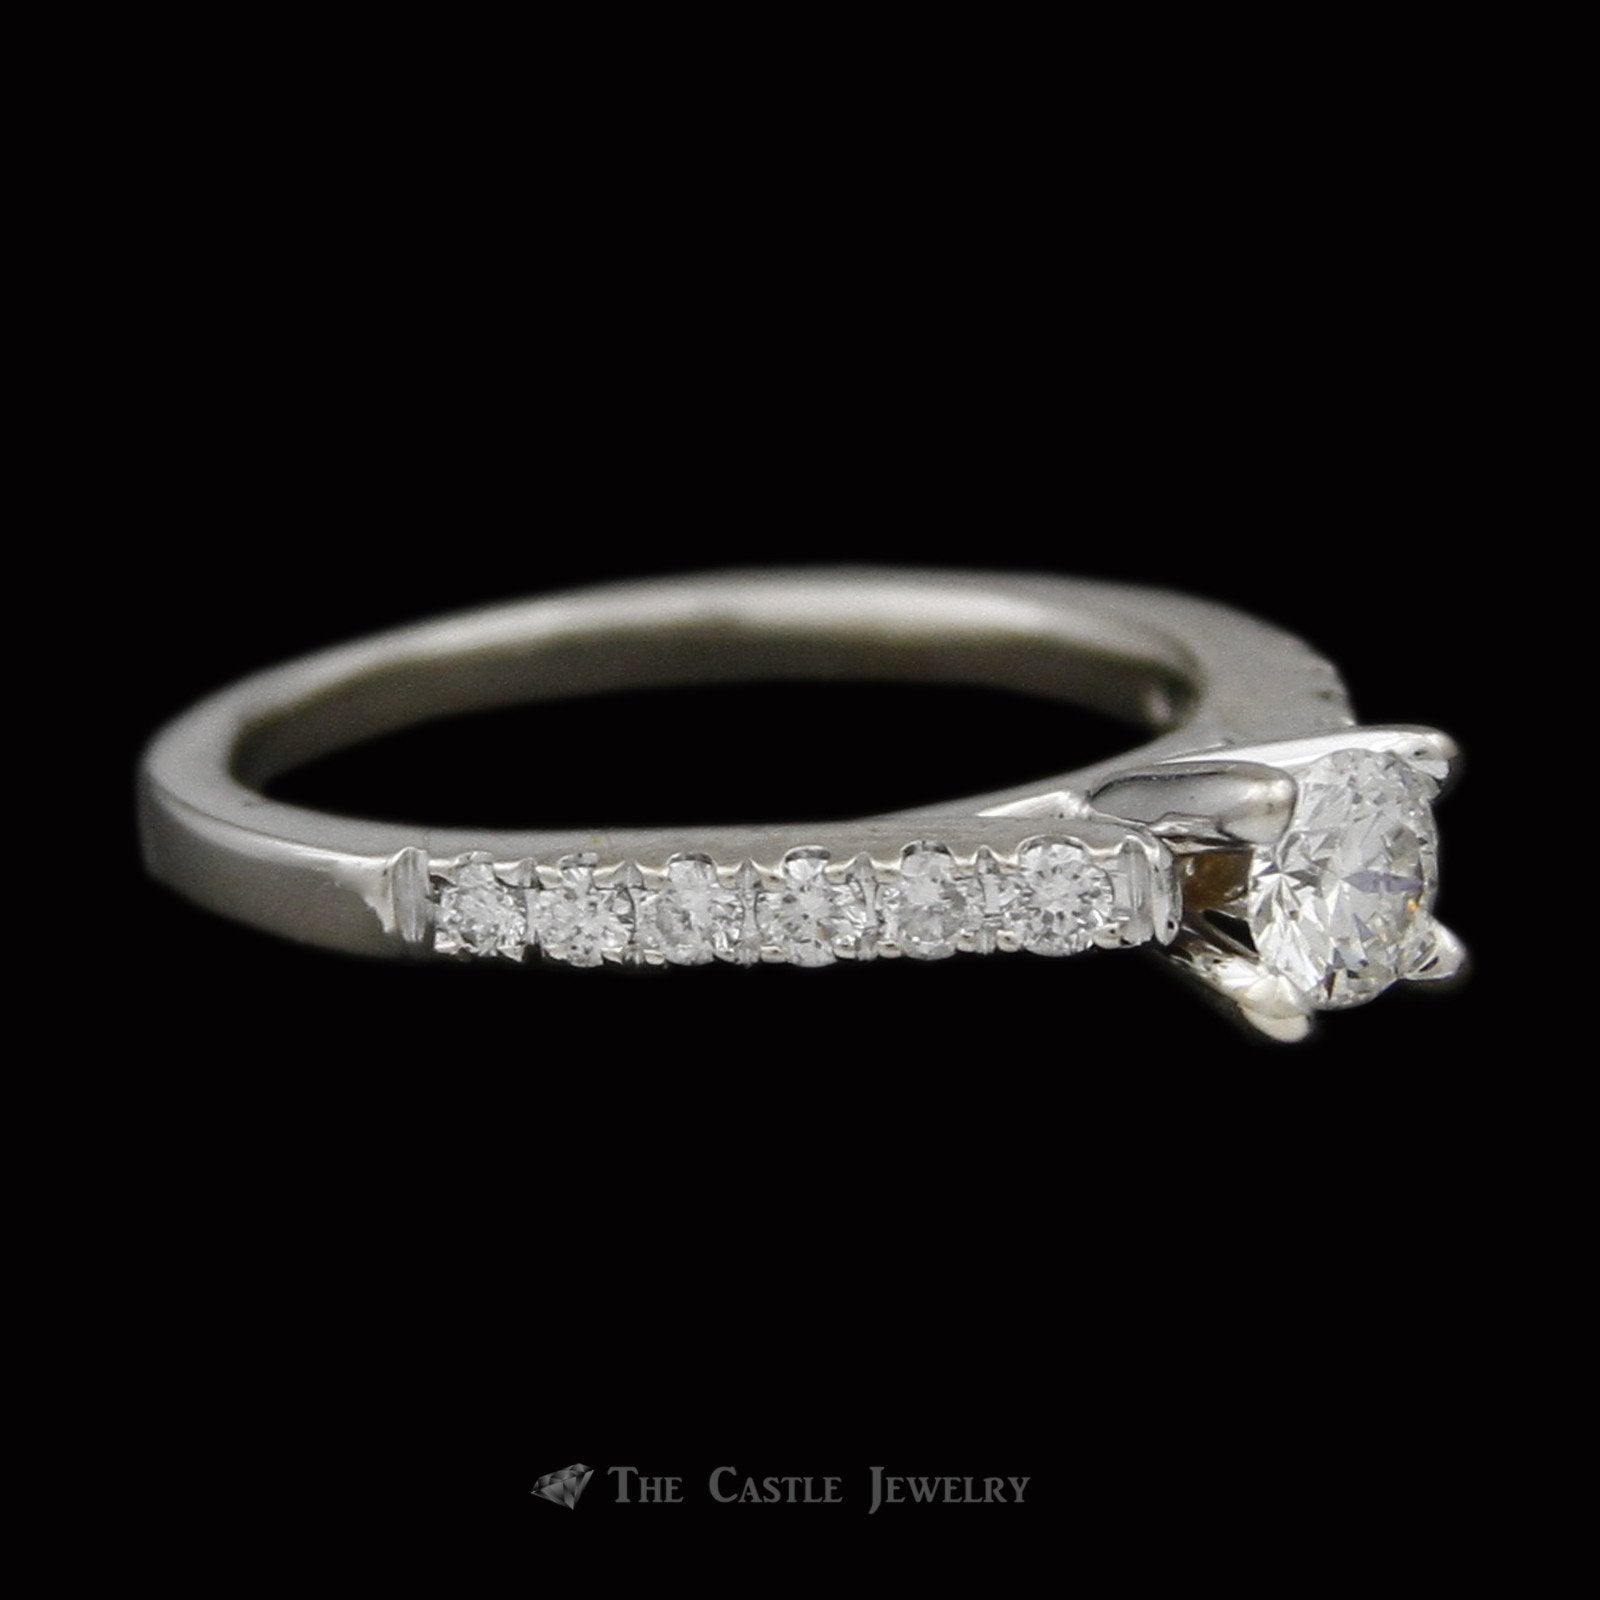 Round Brilliant Cut Diamond Engagement Ring w/ Prong Set Round Diamond Sides in 14k White Gold